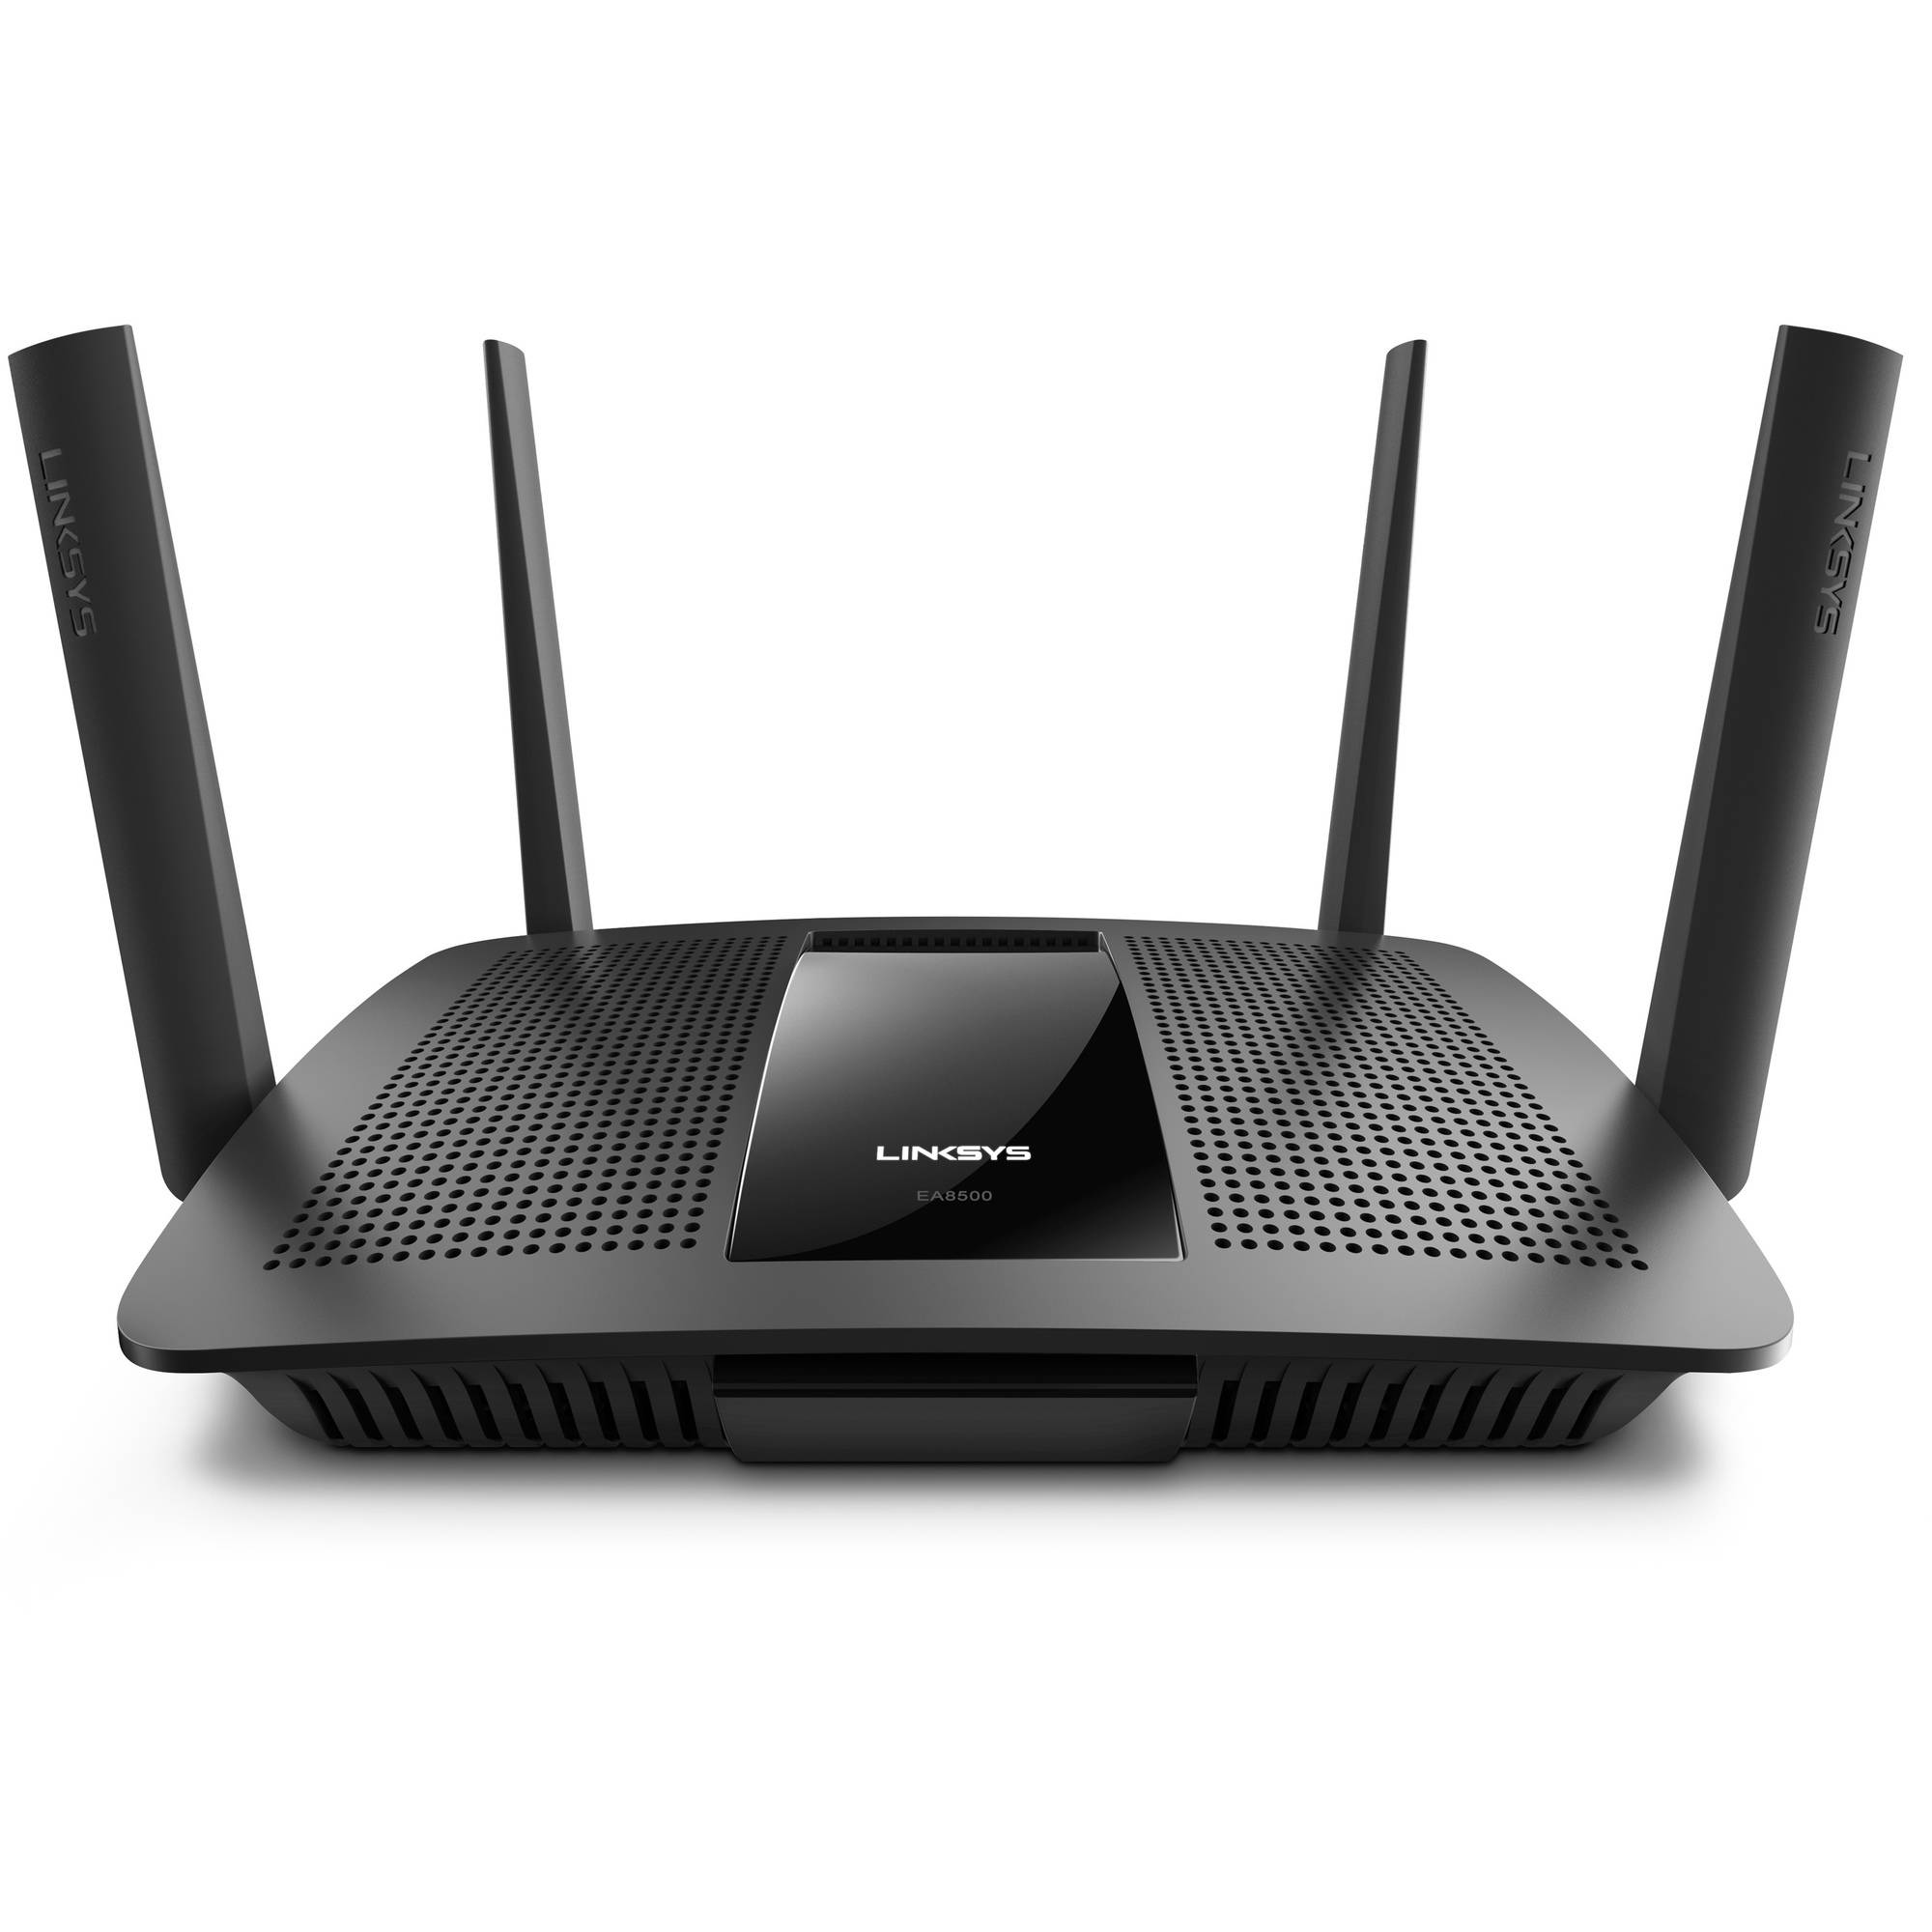 Linksys AC2400 Dual-Band Gigabit Smart WiFi Router with MU-MIMO Technology